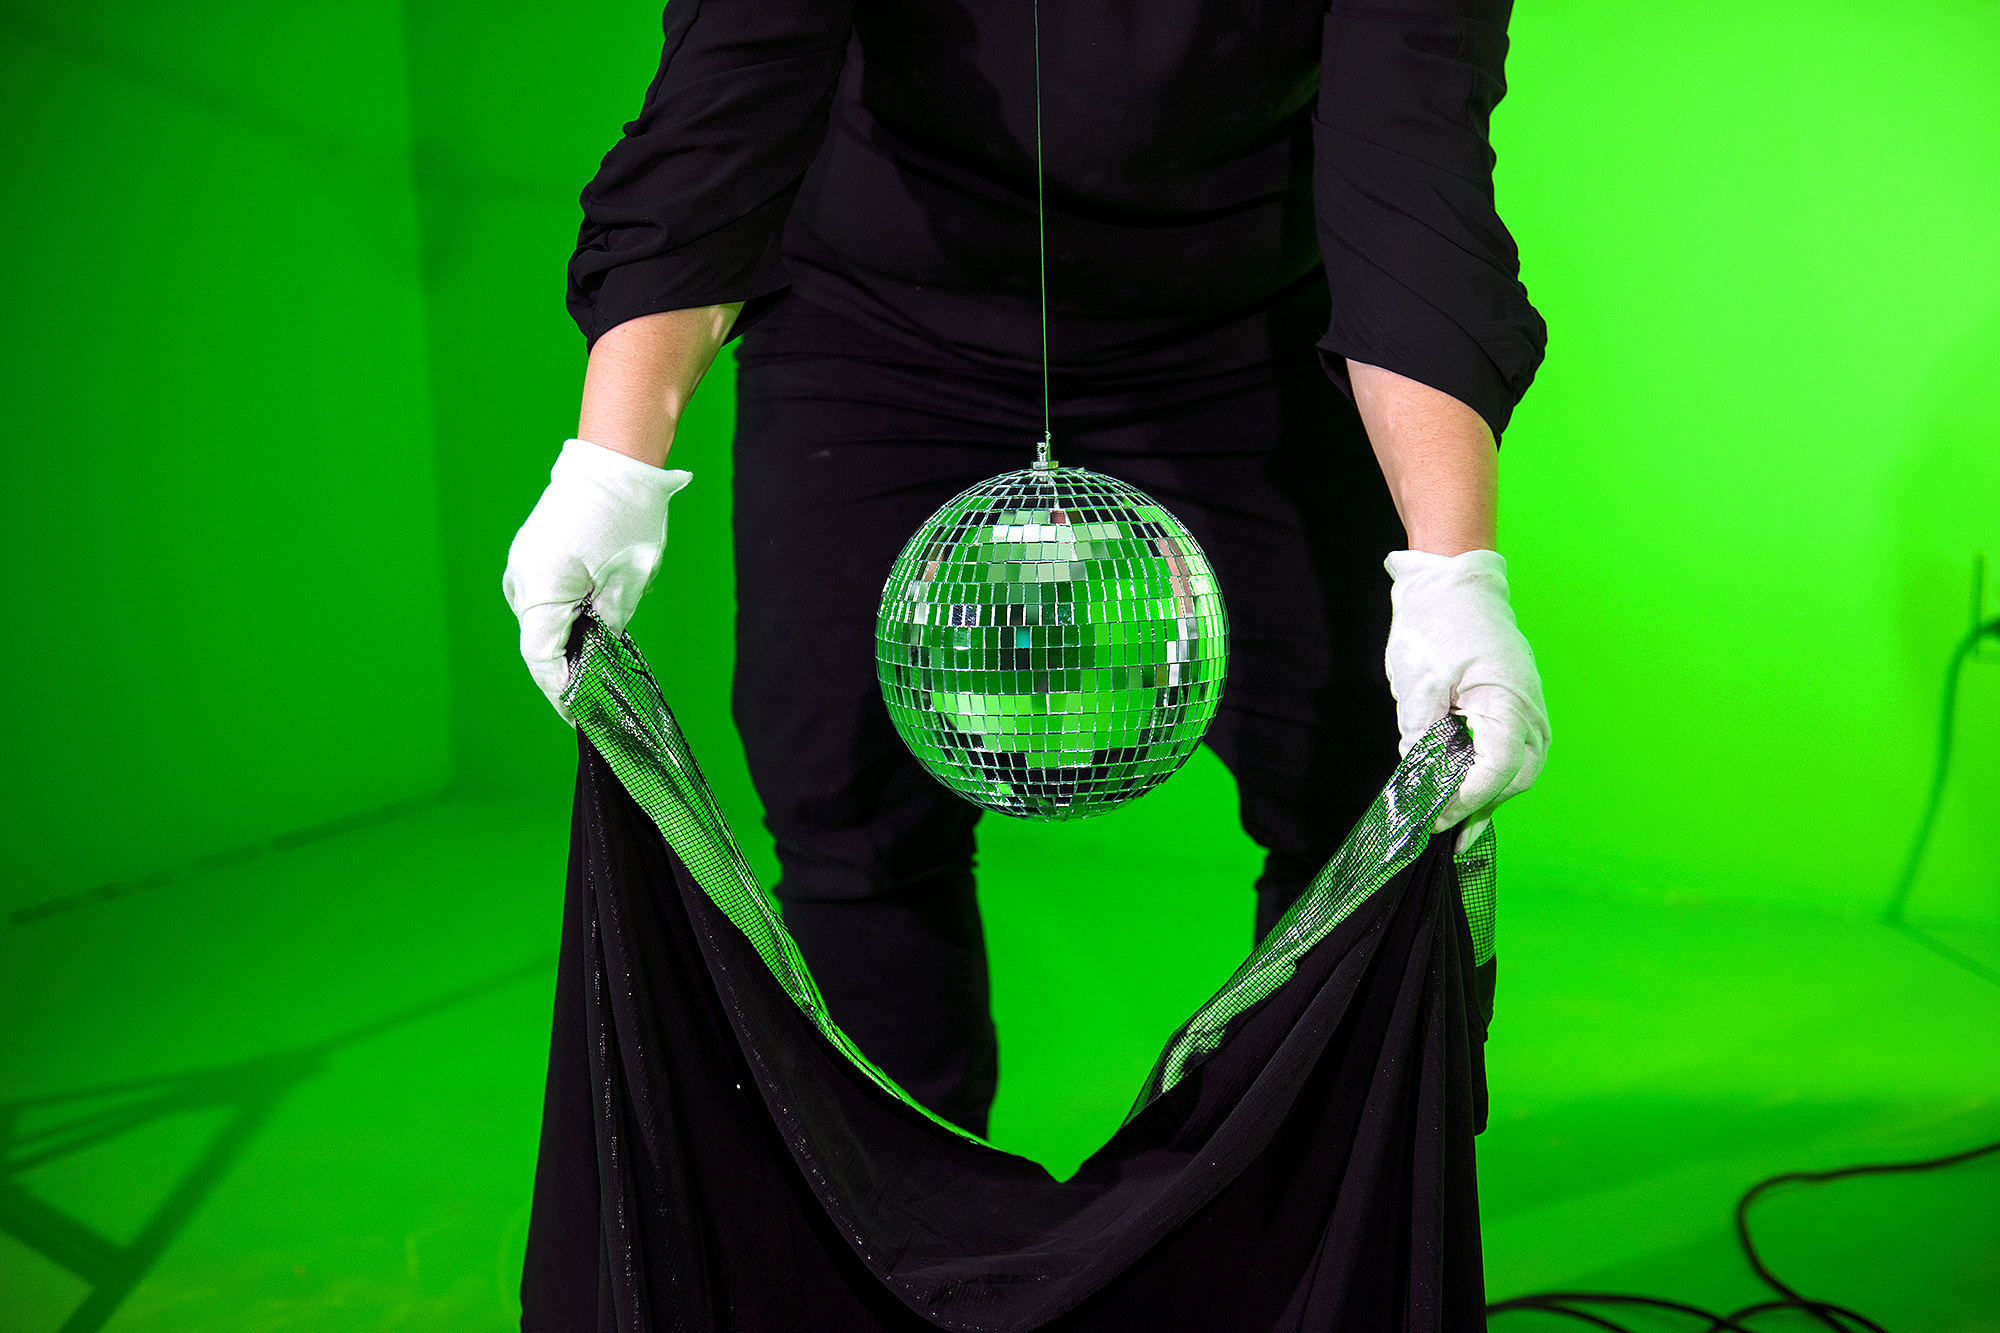 Michelle Murphy, artist, Michelle Marie Murphy, Chicago, NYC, art, video, performance, performance art, contemporary, magic, disco, globe, green screen, mystic, time-based, lens based, art, artwork, contemporary, mama, mothernist, feminist, feminism, modern, new, emerging